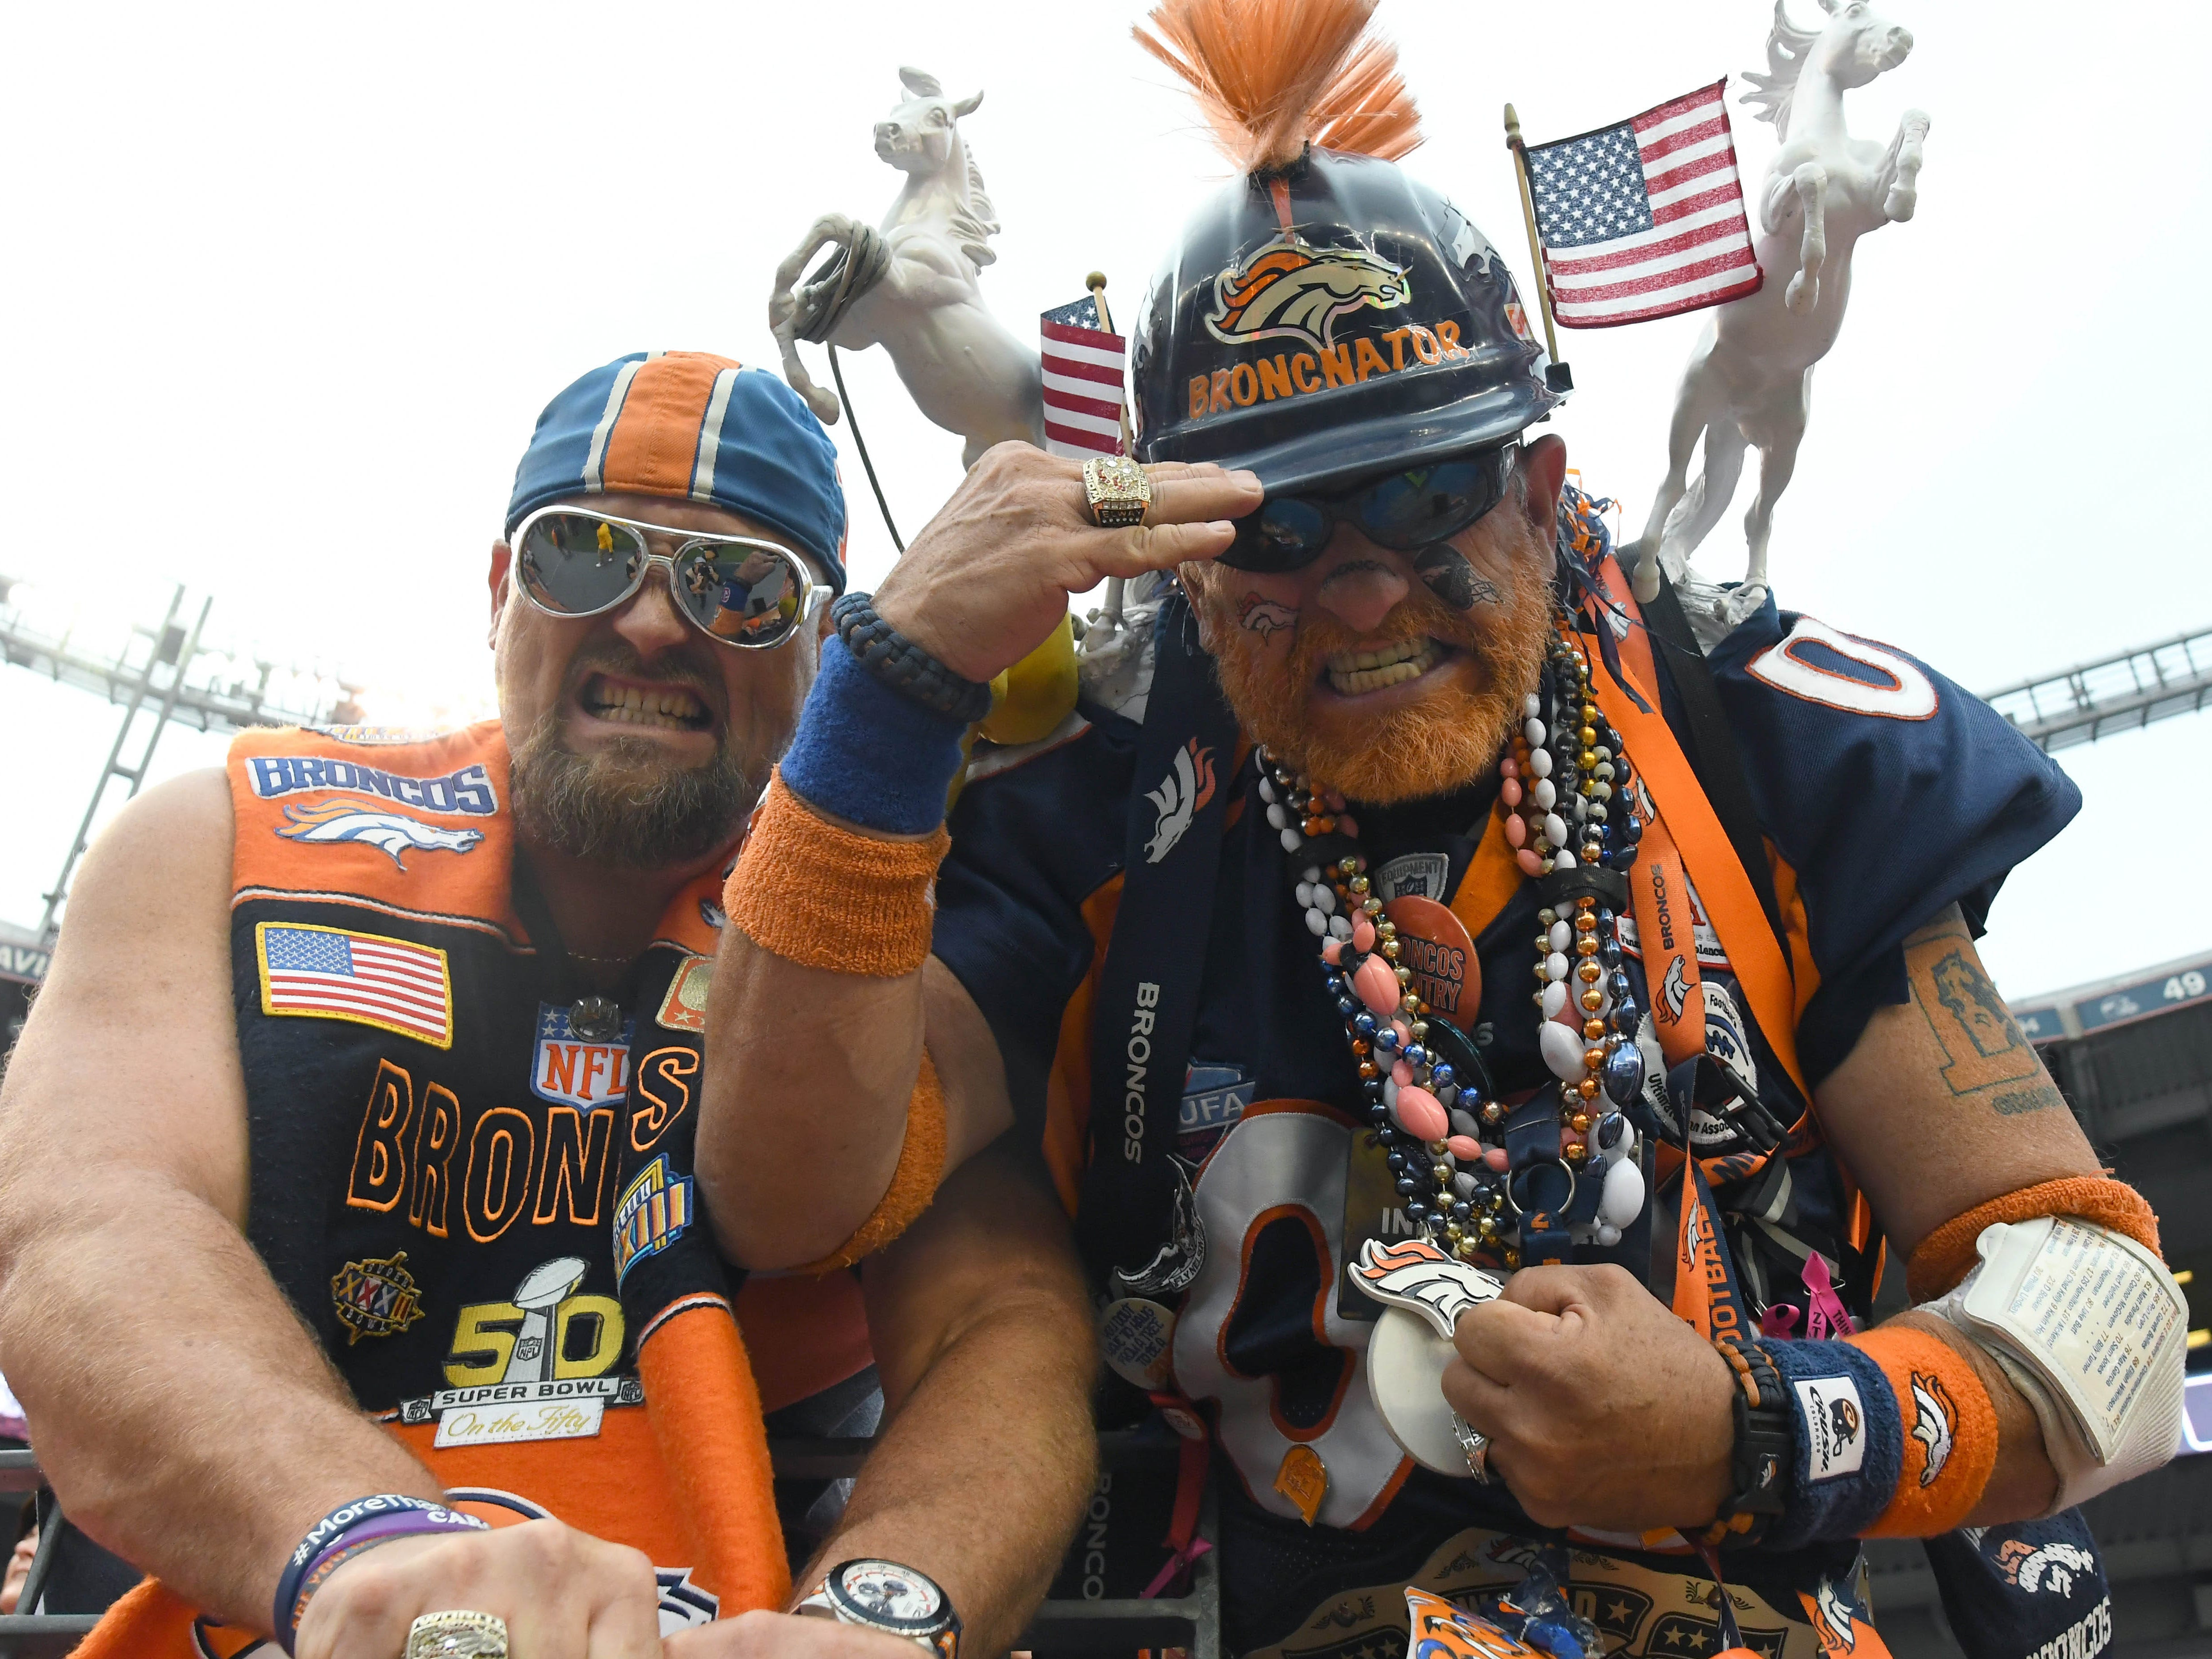 Denver Broncos fans react before the Monday night game against the Kansas City Chiefs at Broncos Stadium at Mile High.